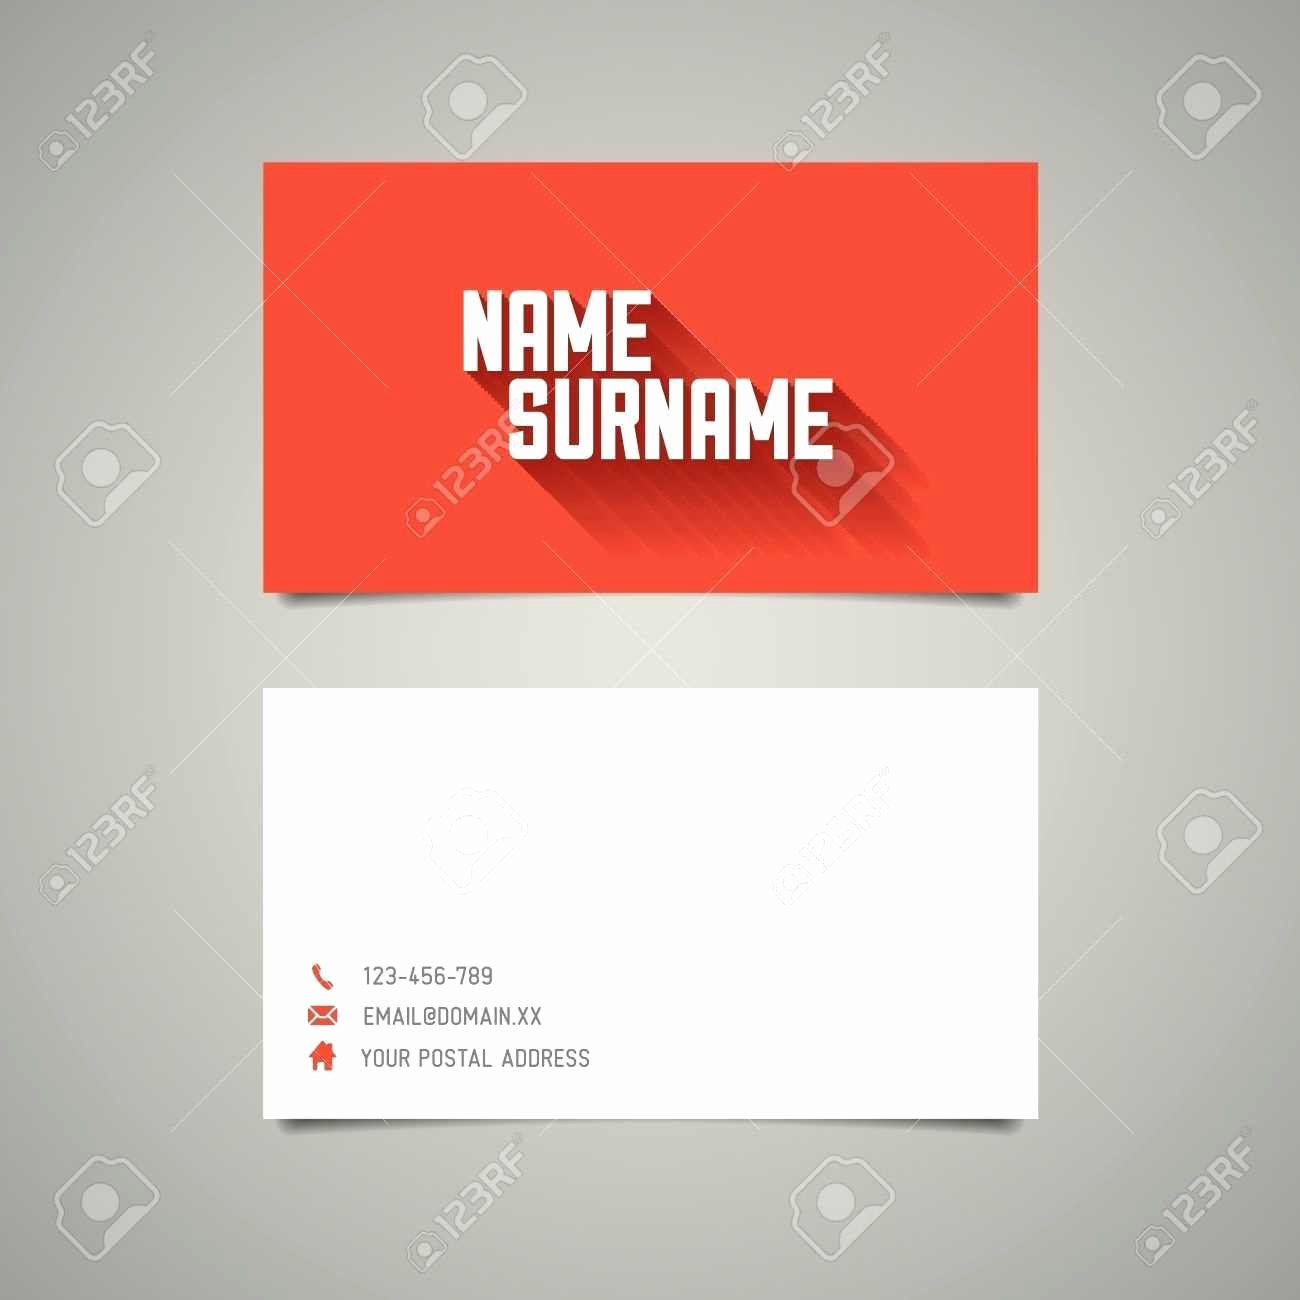 Word Template for Business Cards Best Of 12 Lovely Ms Word Business Card Templates Graphics